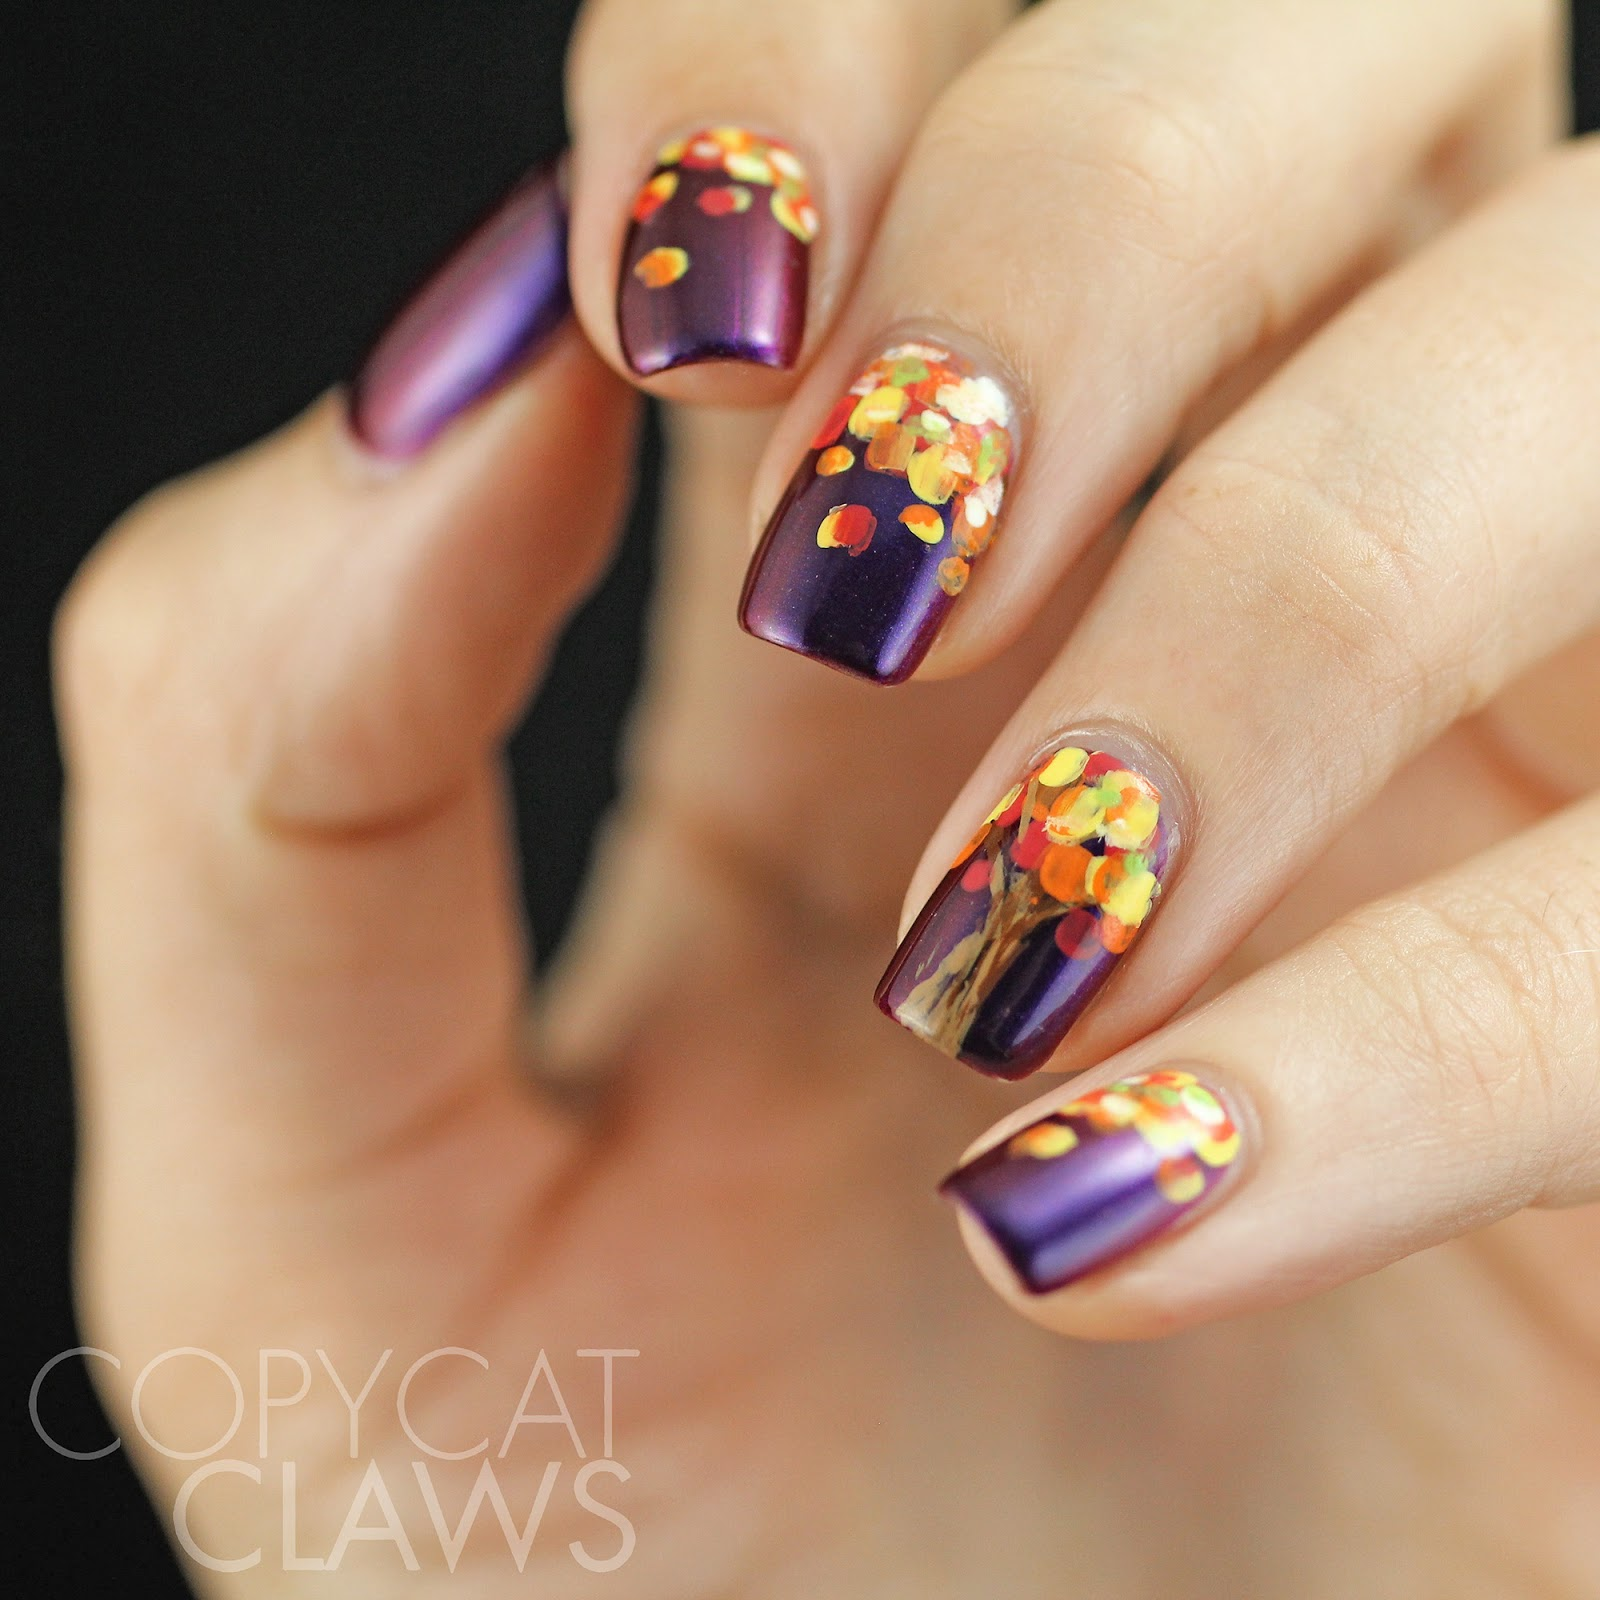 Copycat Claws: HPB Presents Fall Tree Nail Art